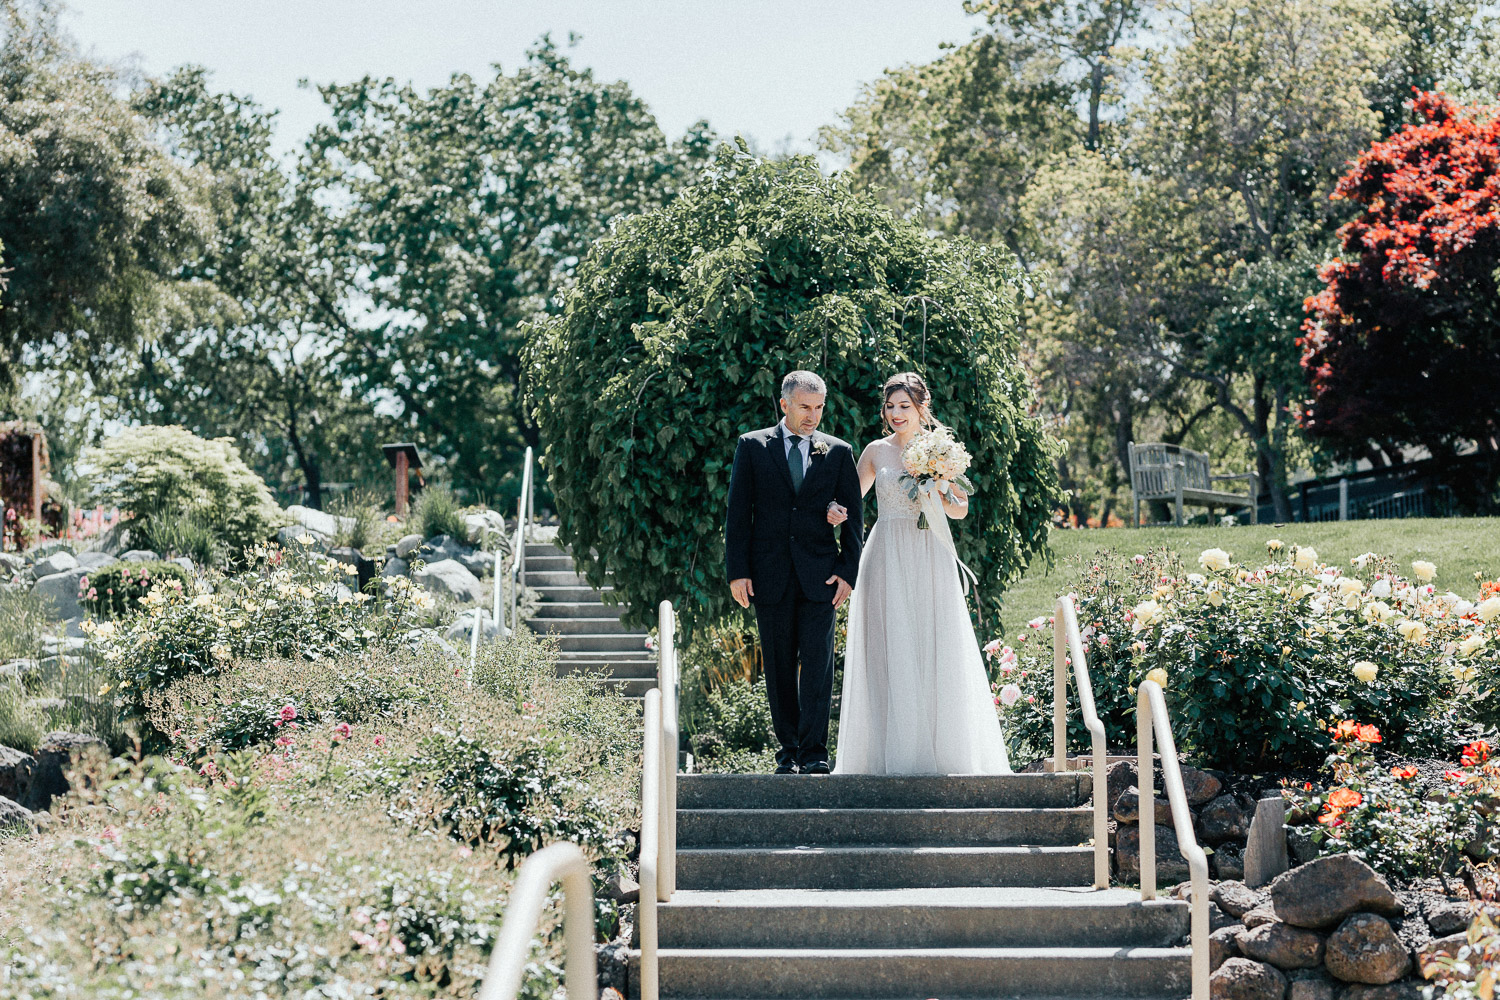 Image of bride walk down the aisle with bride's father